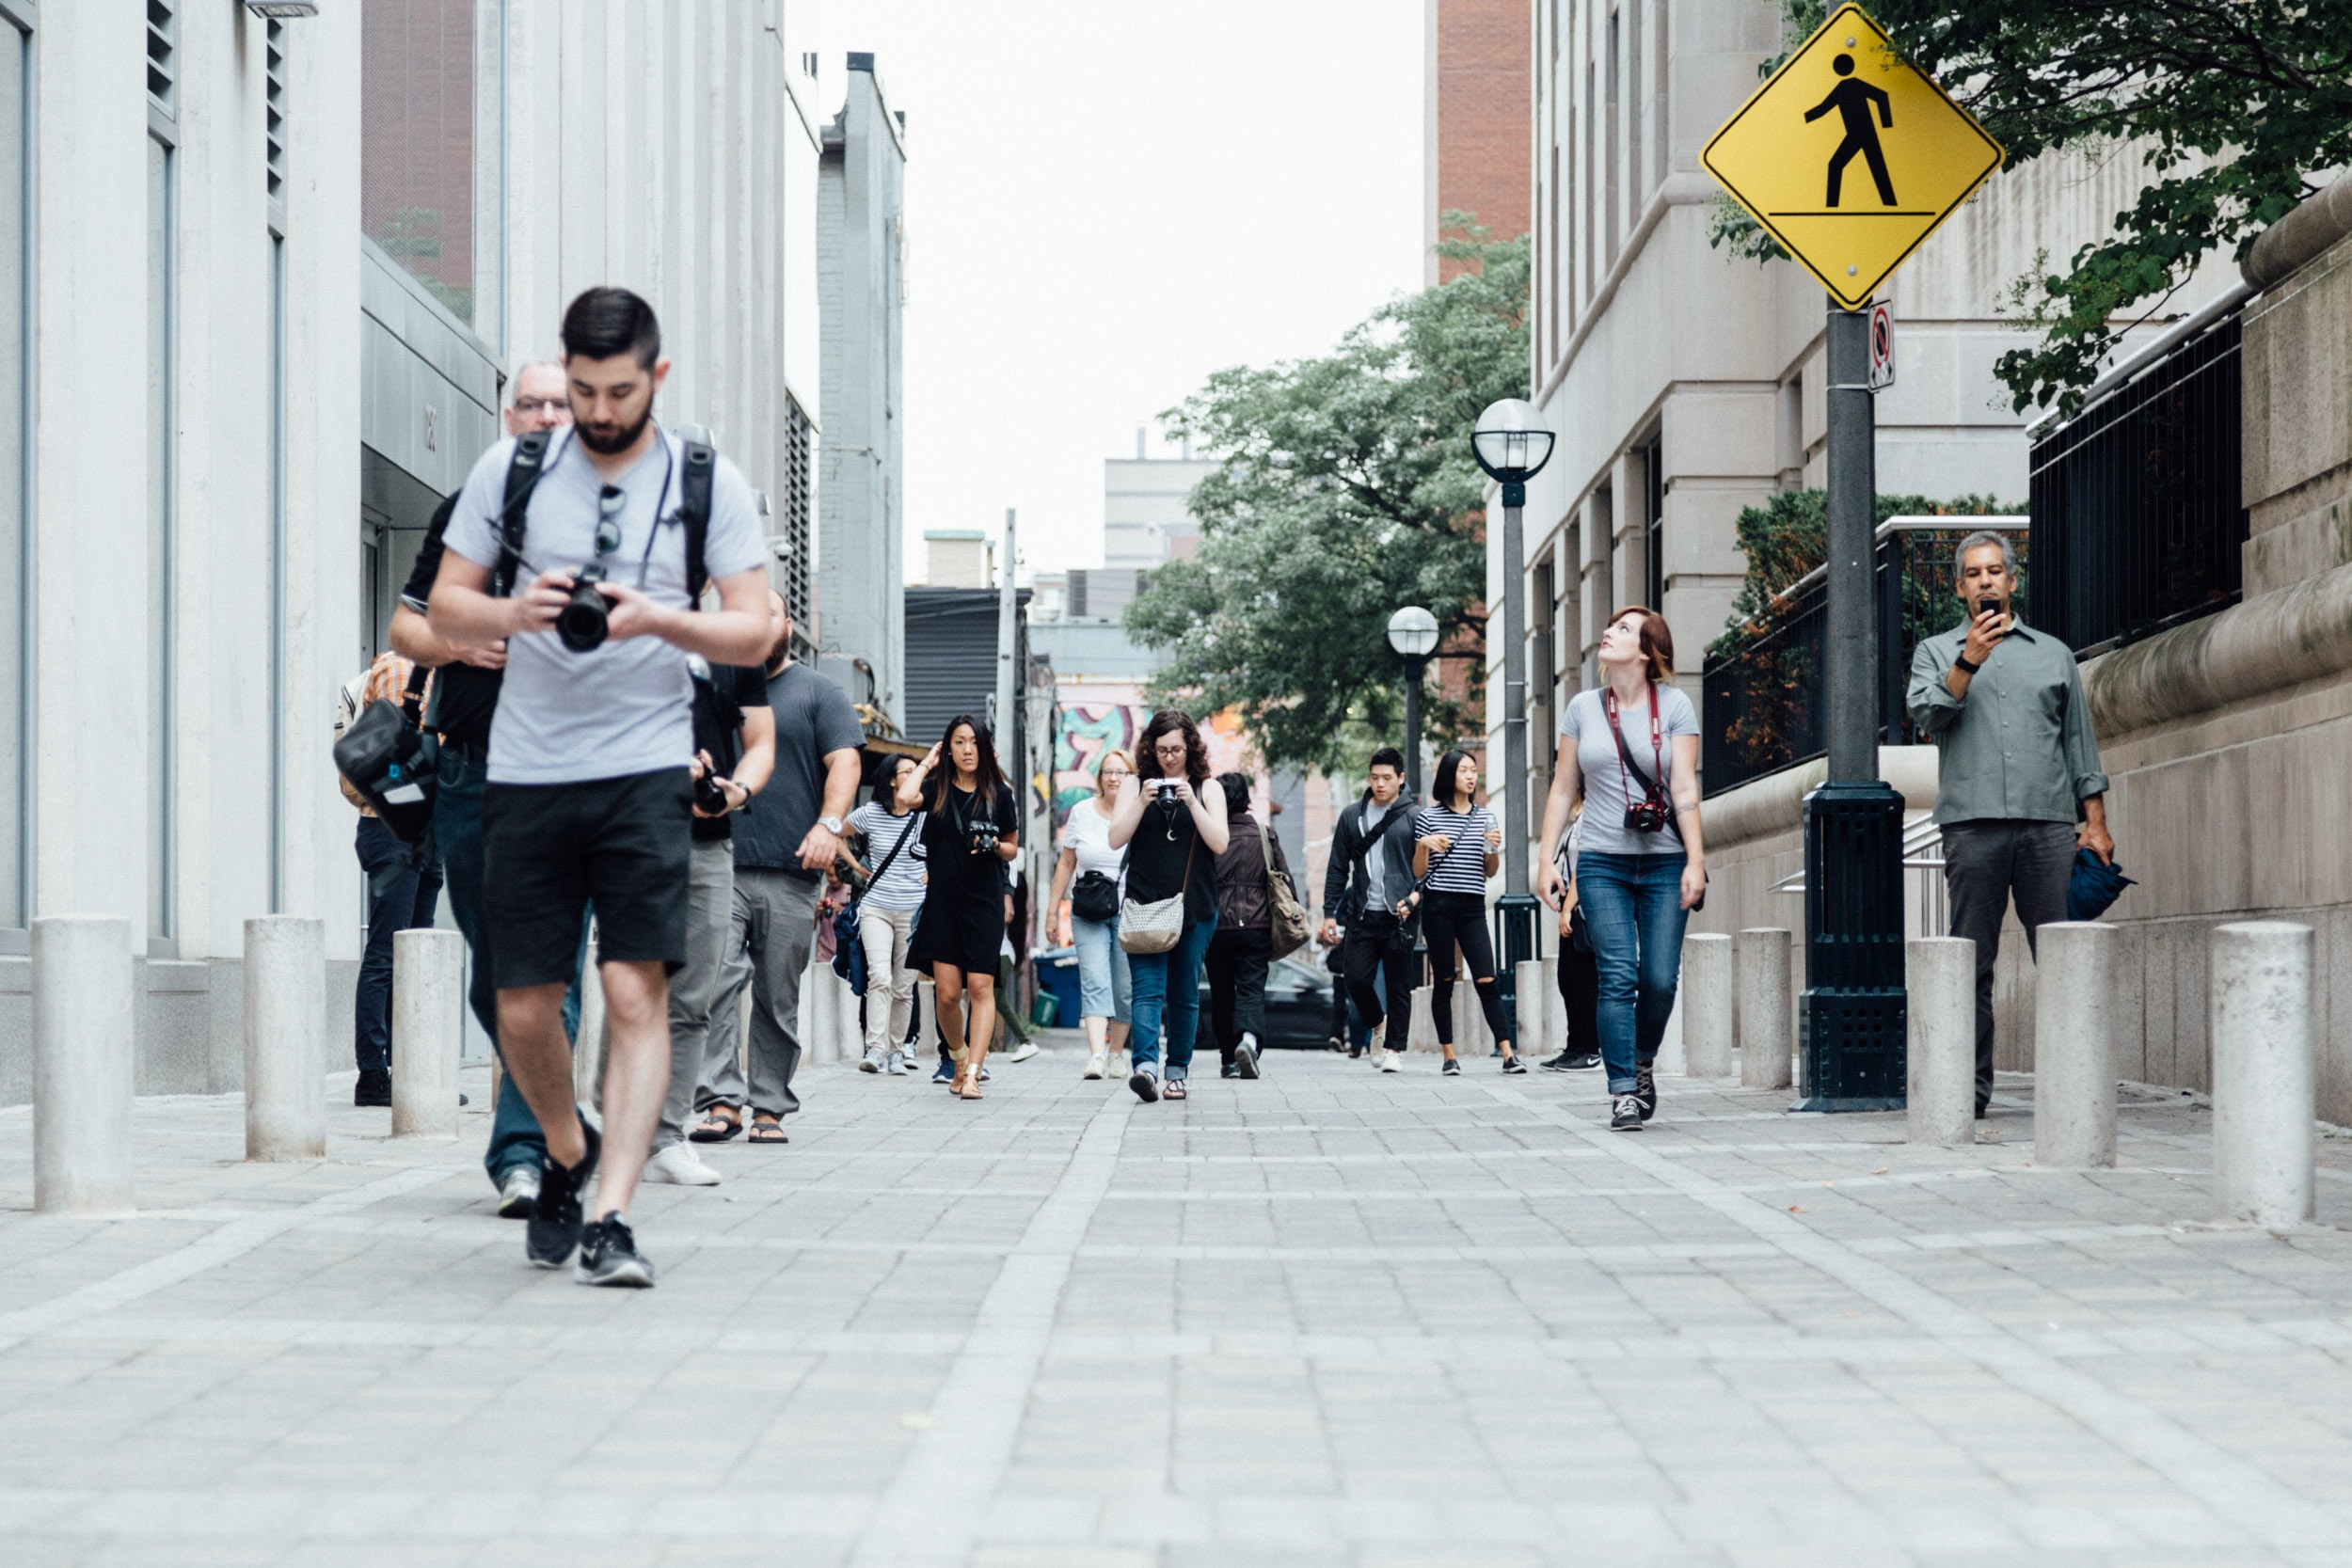 A diverse group of pedestrians walks down a sidewalk in Toronto